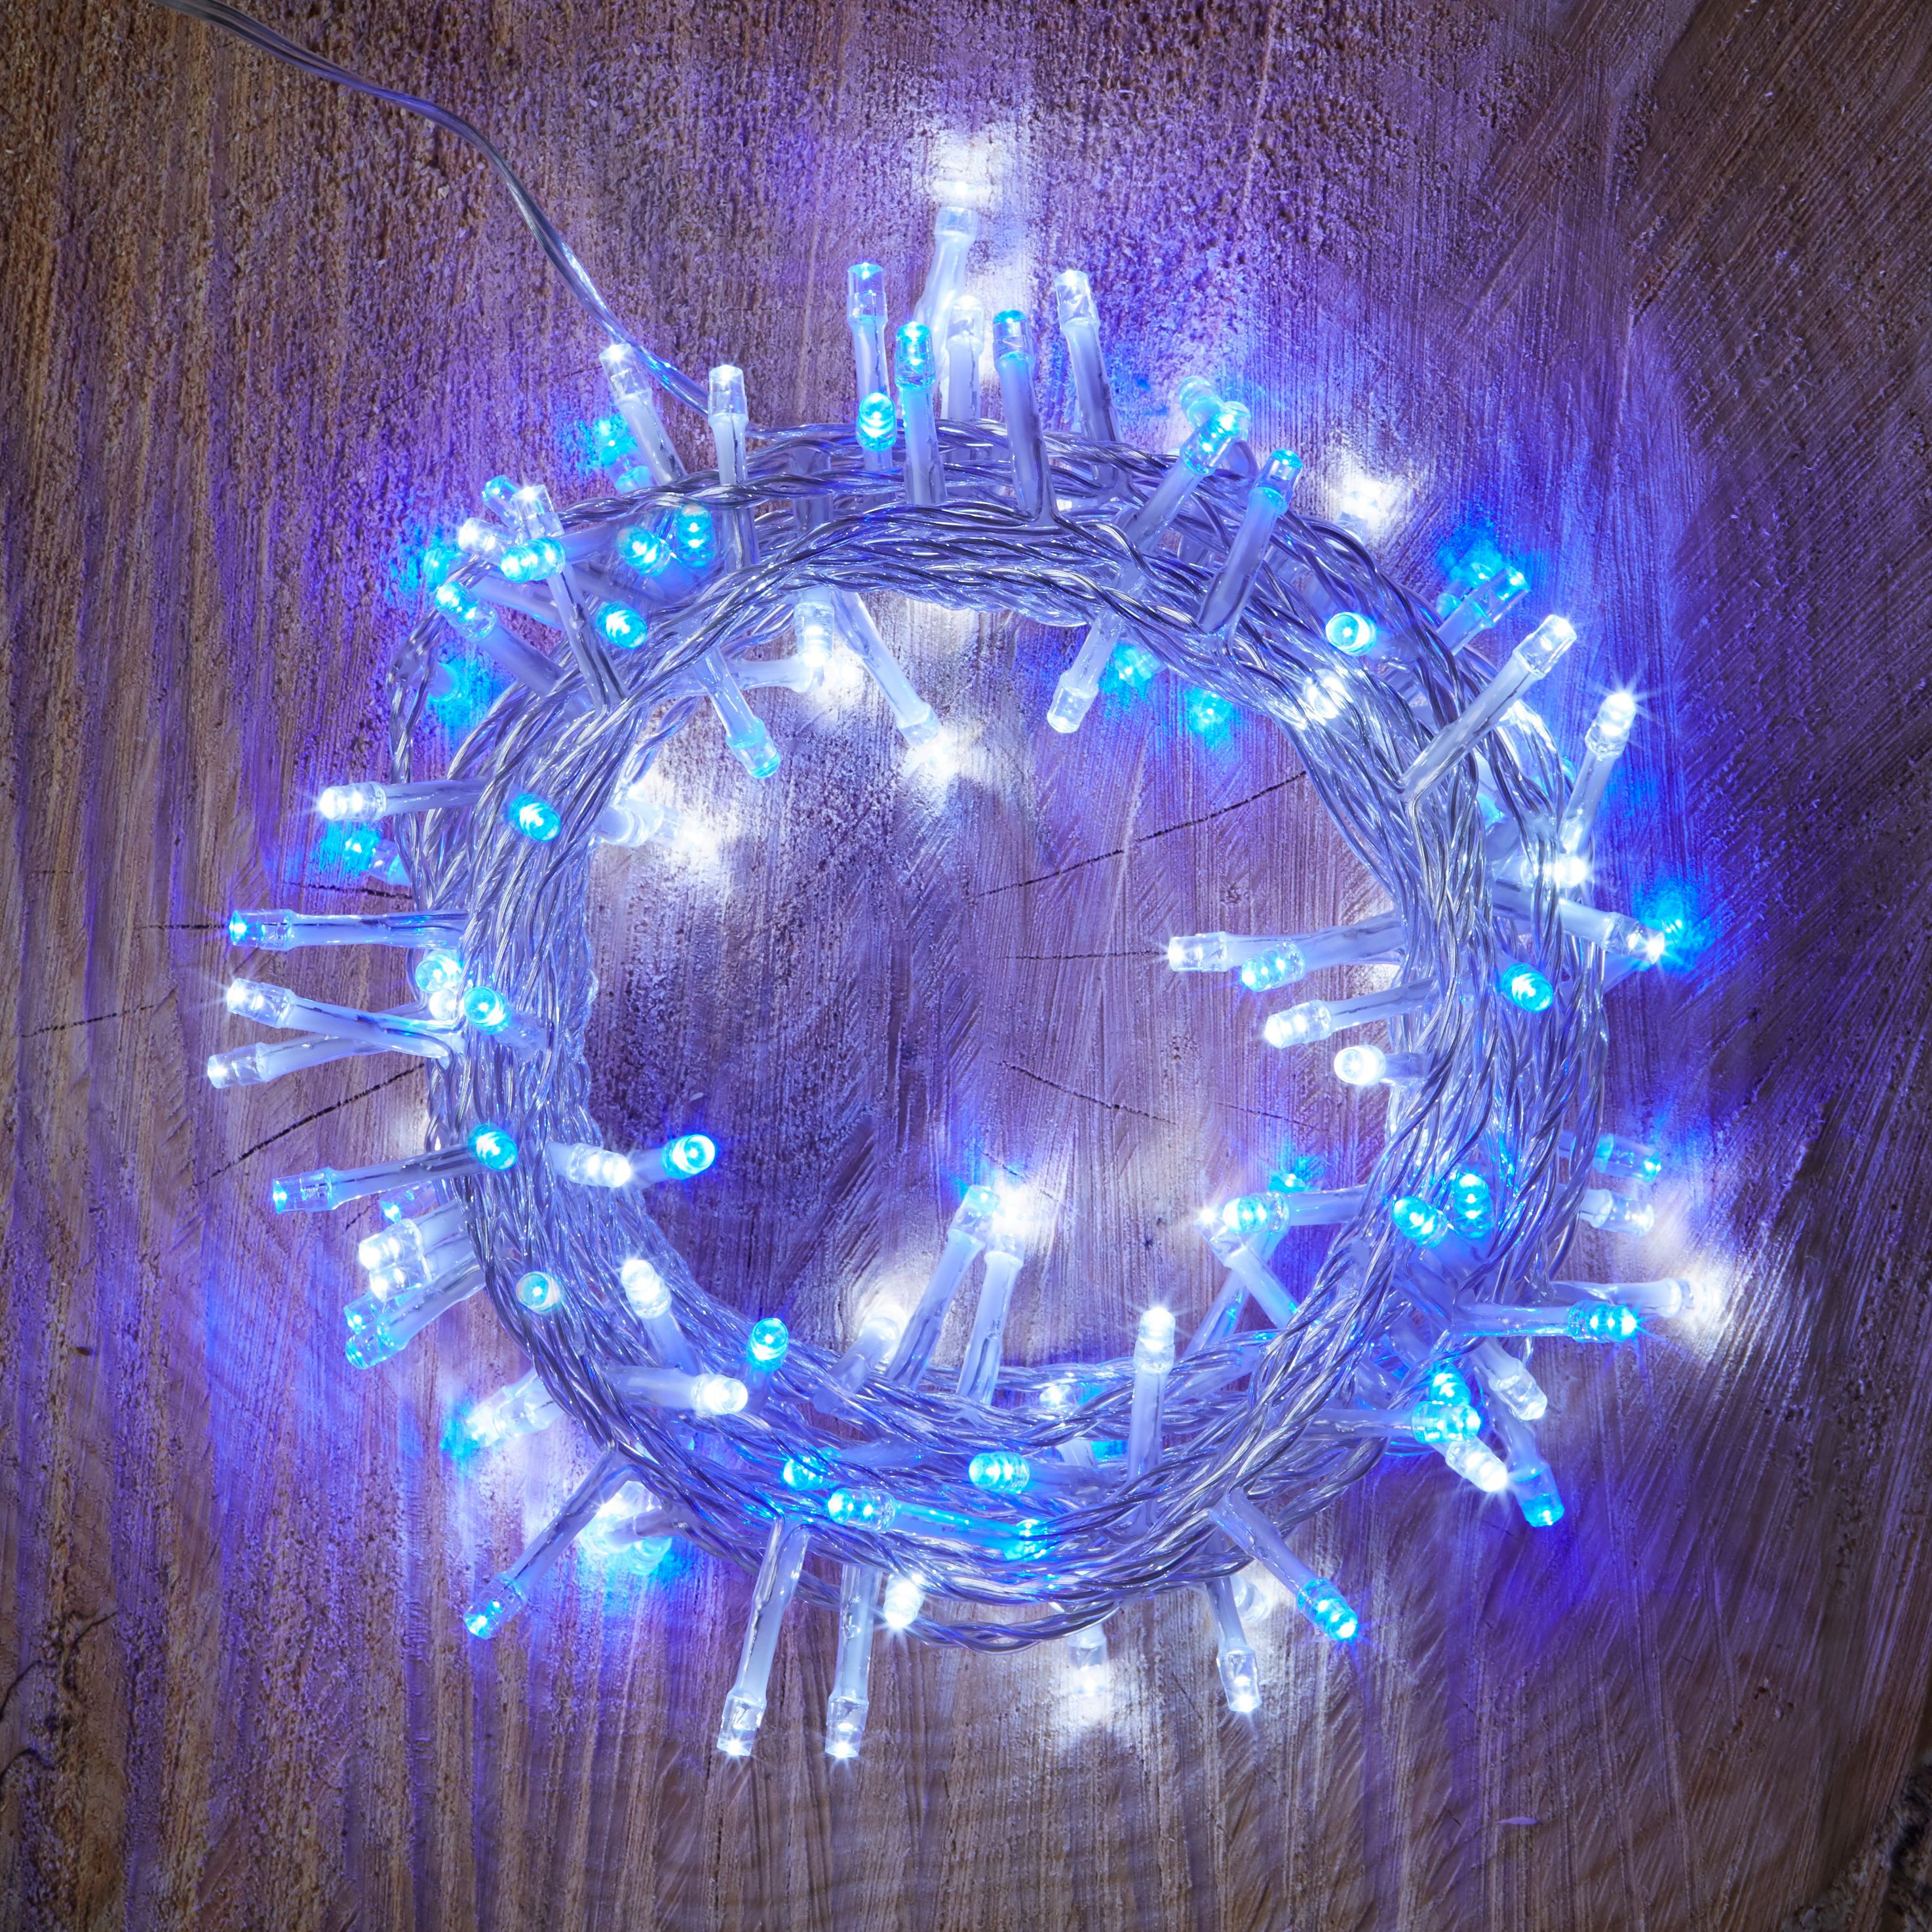 120 Blue & White LED String Lights Departments DIY at B&Q